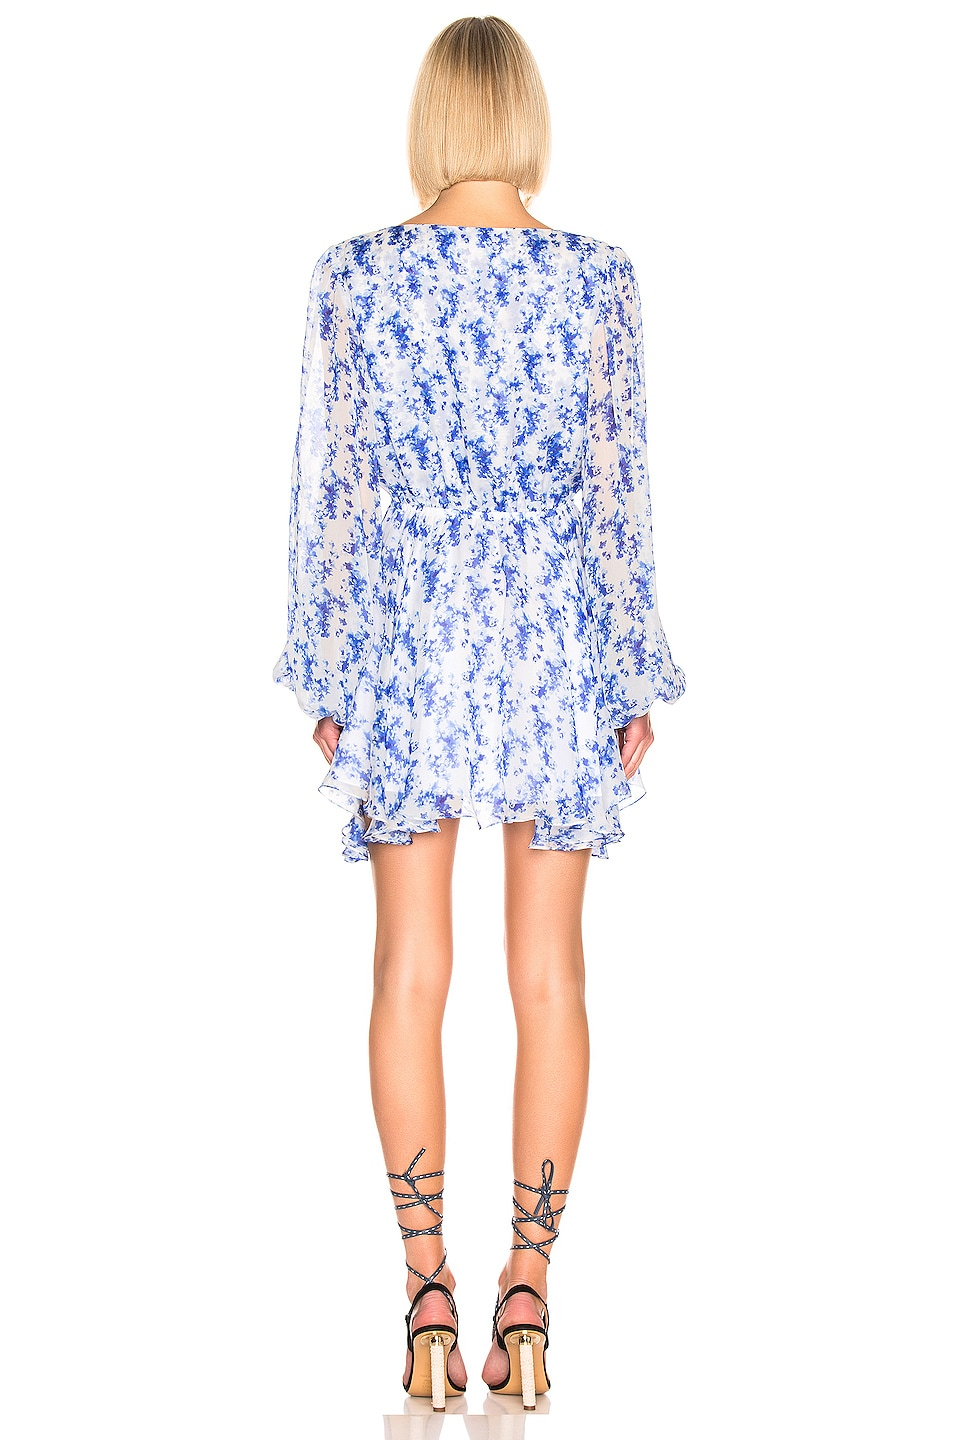 Image 3 of Caroline Constas Olena Dress in Blue & White